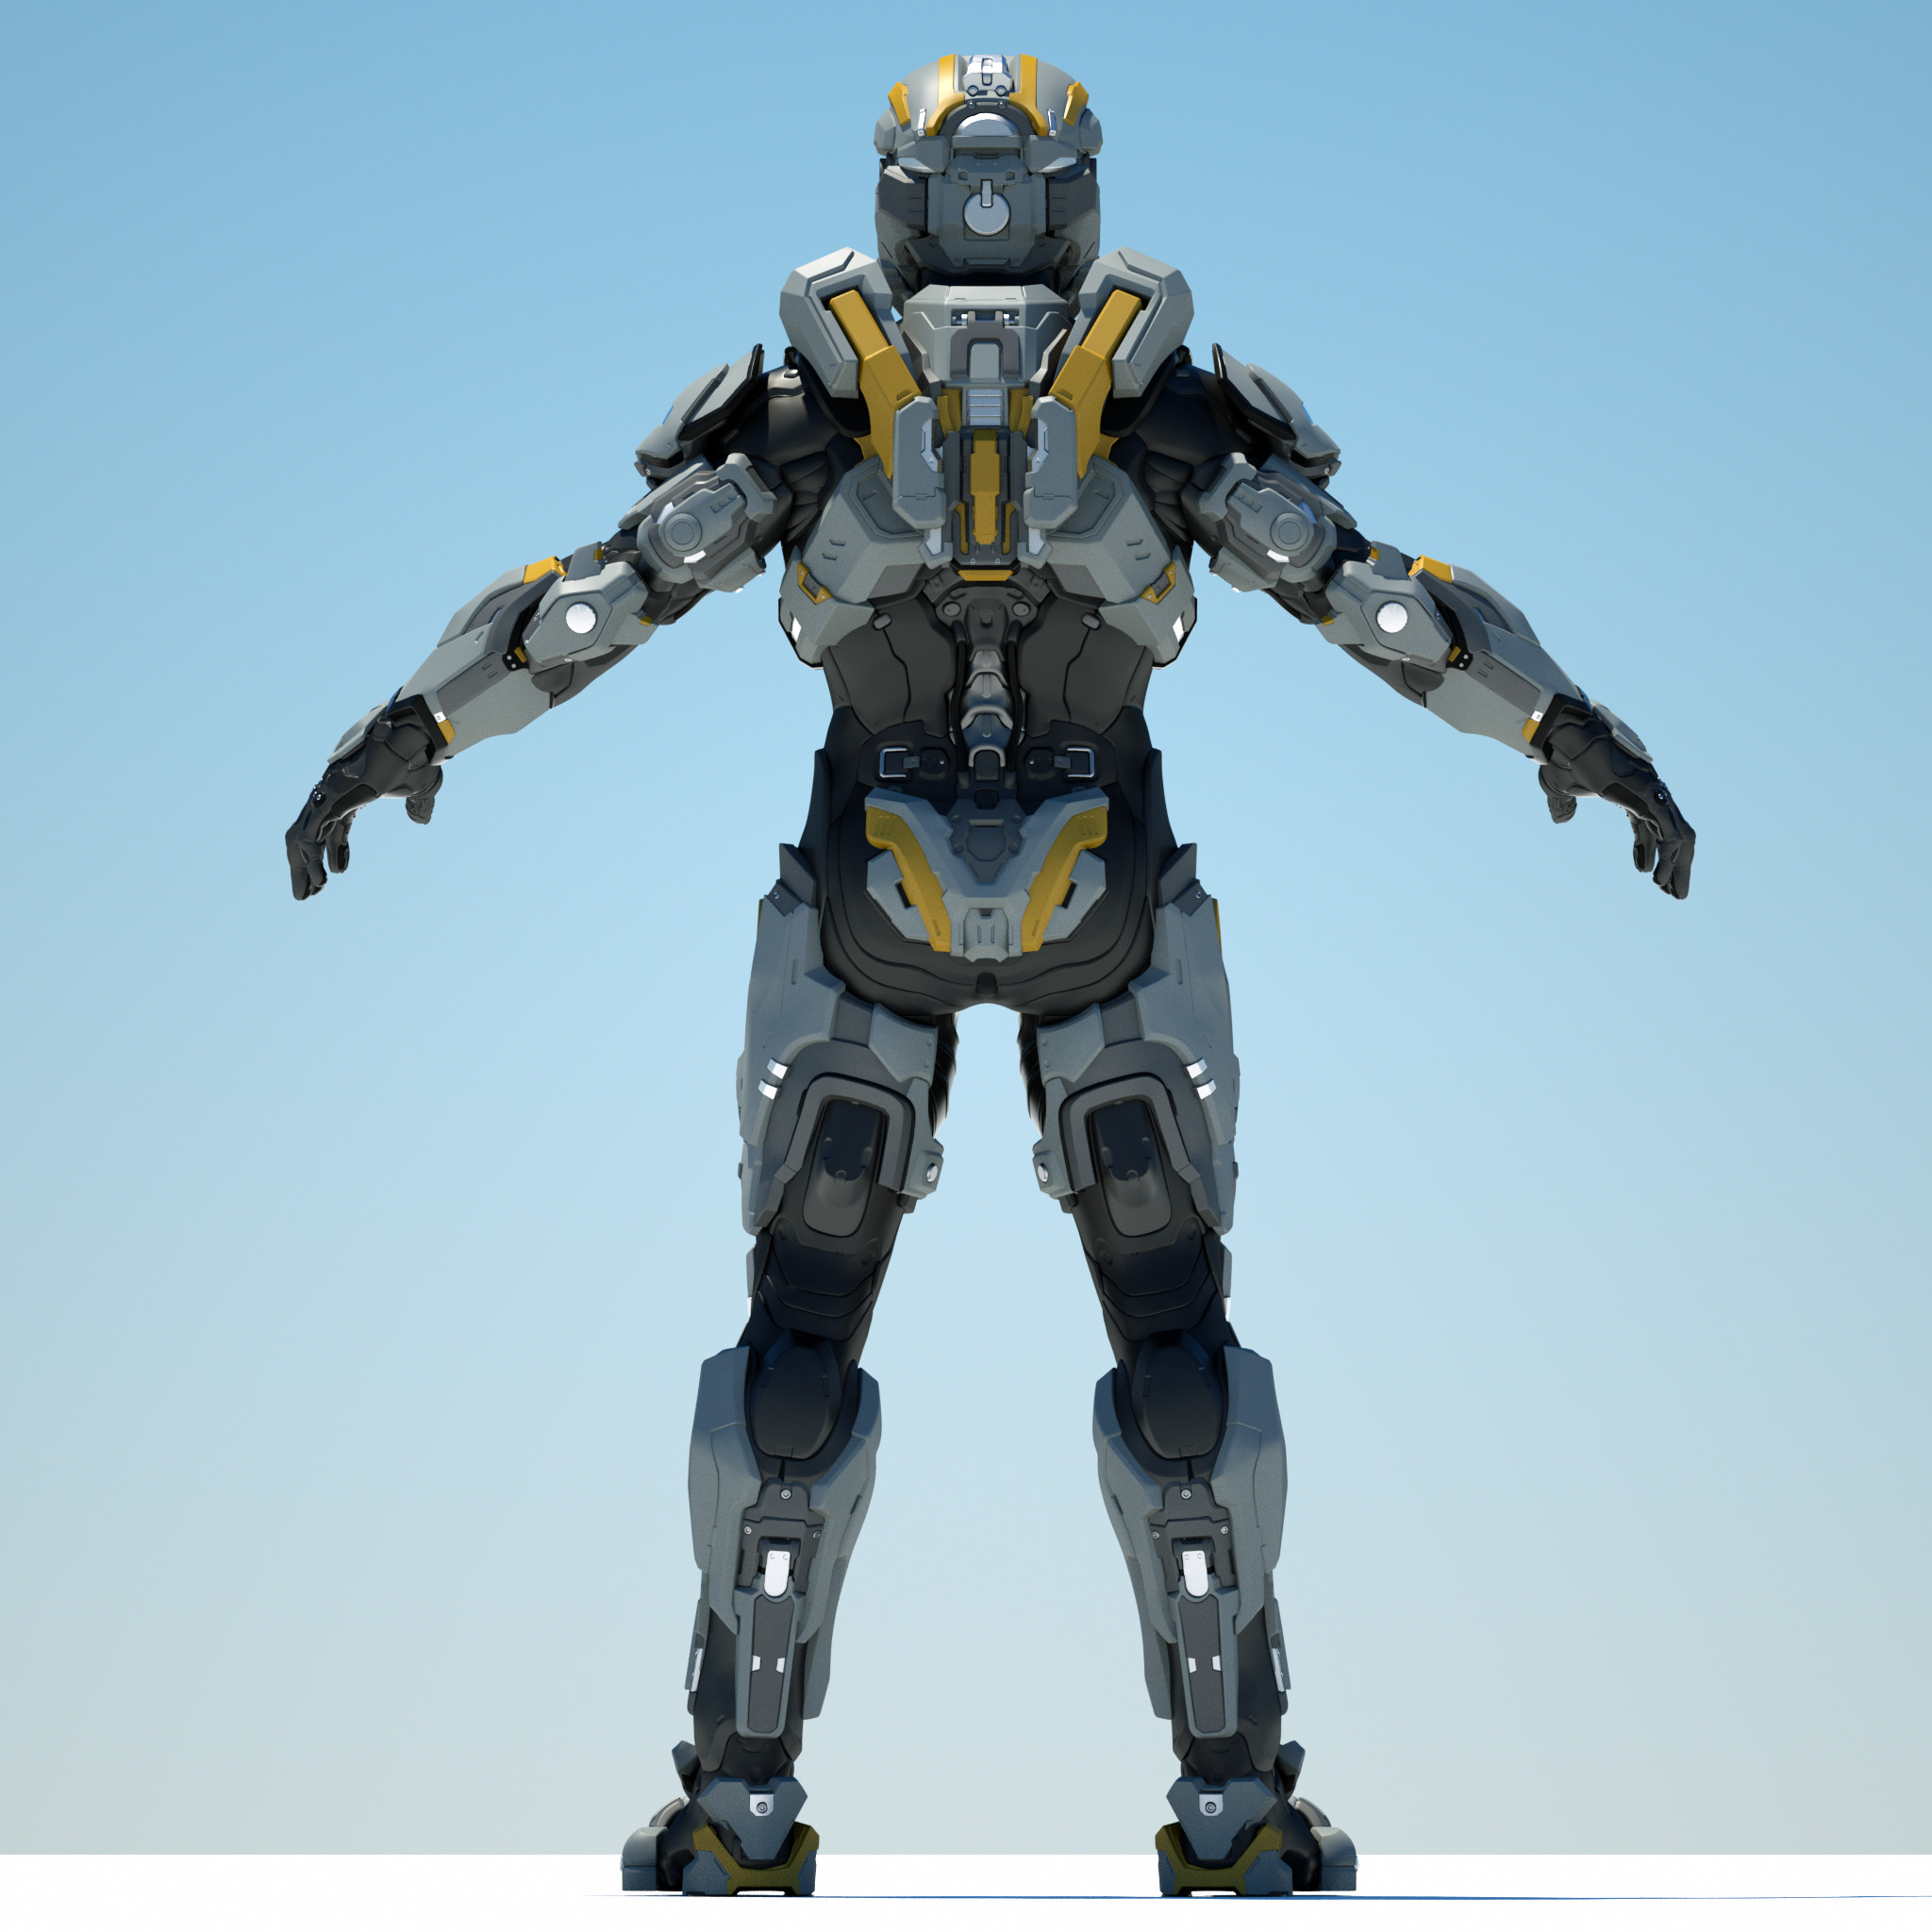 Octane render of one of the MCC: Halo 2 Anniversary Armor sets